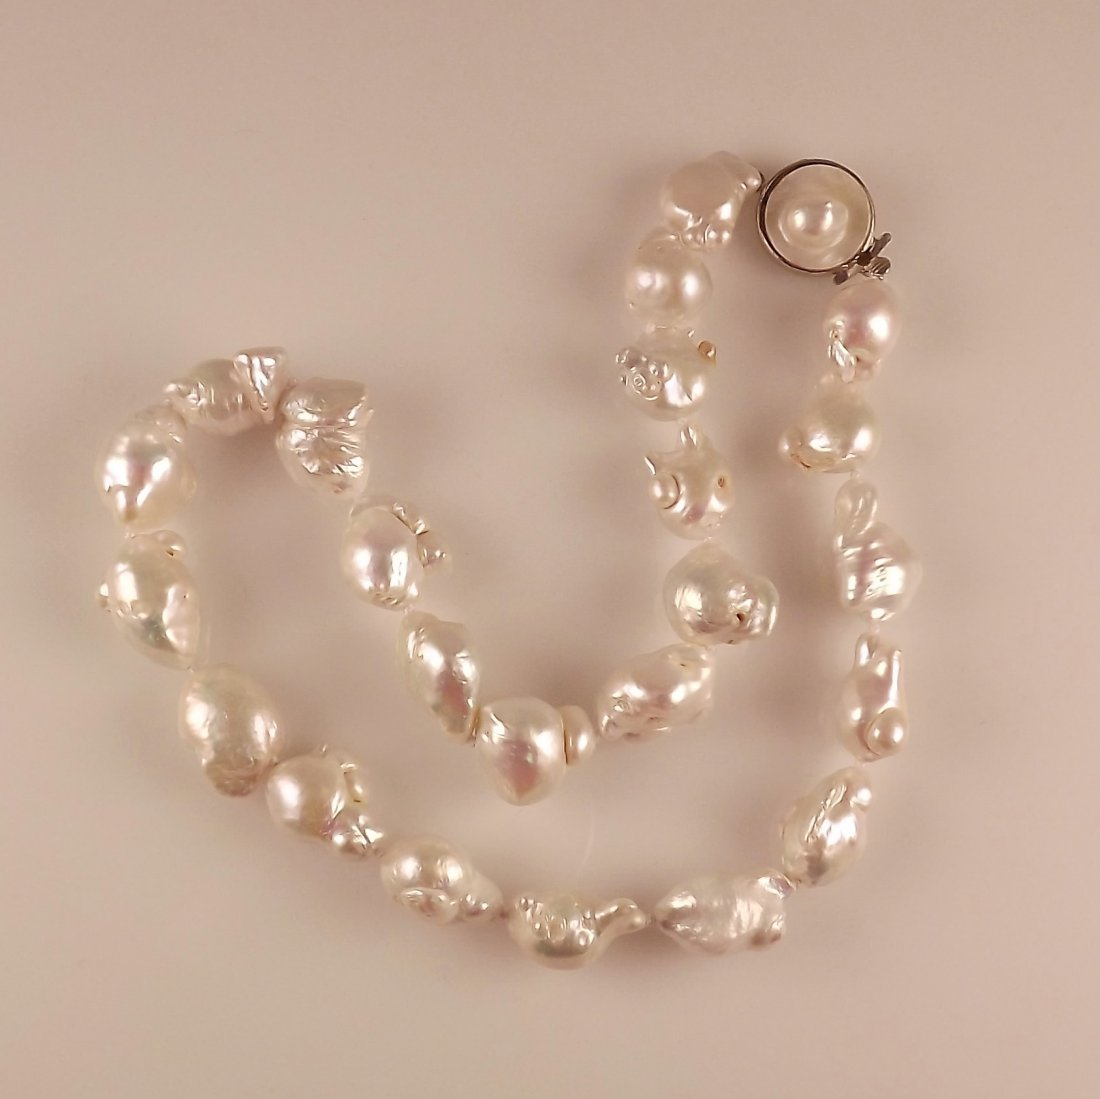 13-15mm White Keshi Baroque Pearl Necklace